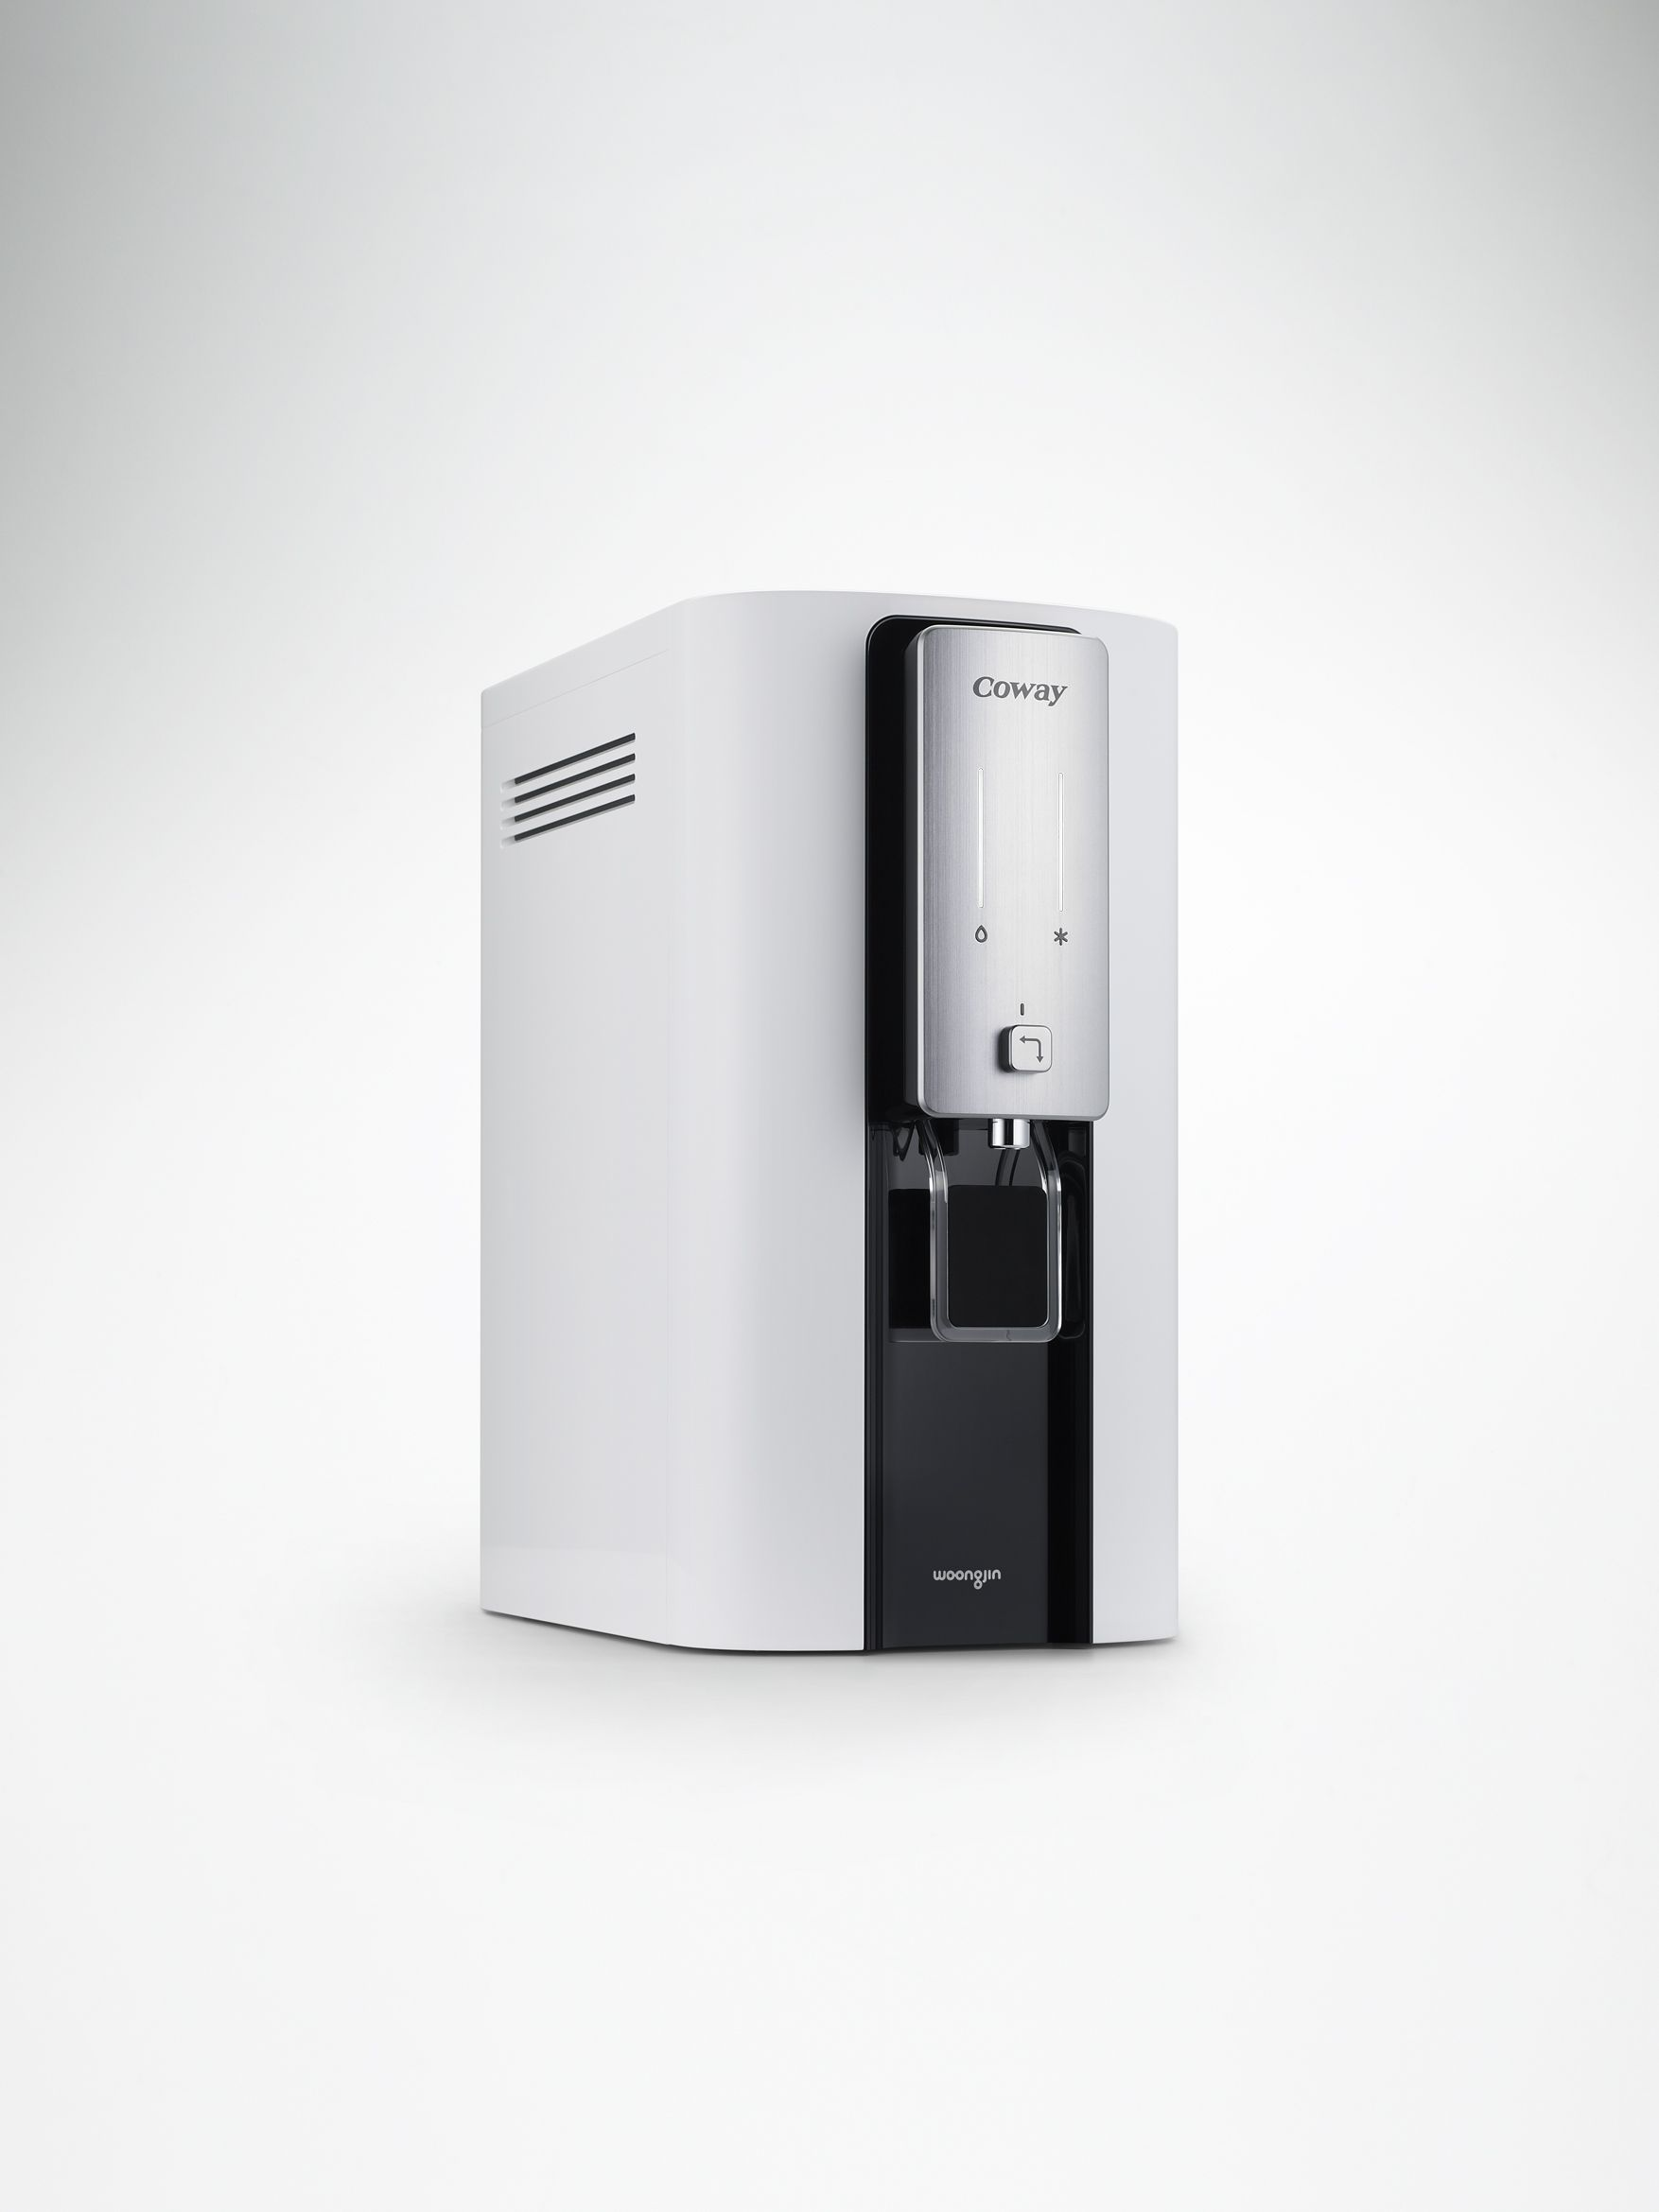 Design Water Purifier Coway Design Pinterest